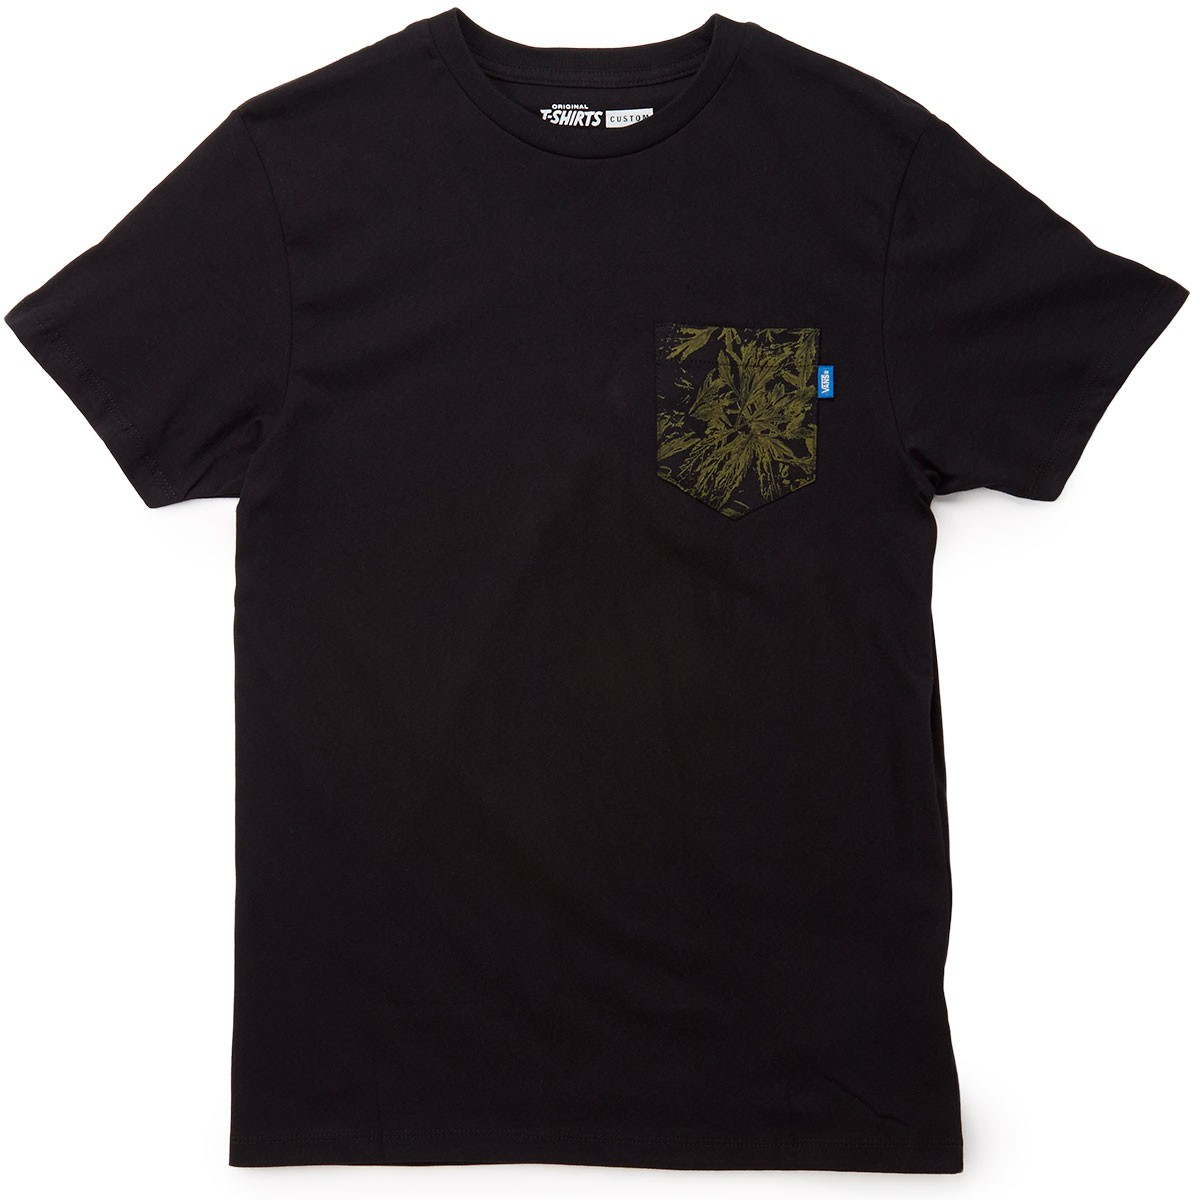 Vans printed pocket t shirt black indigo bloom for Pocket t shirt printing